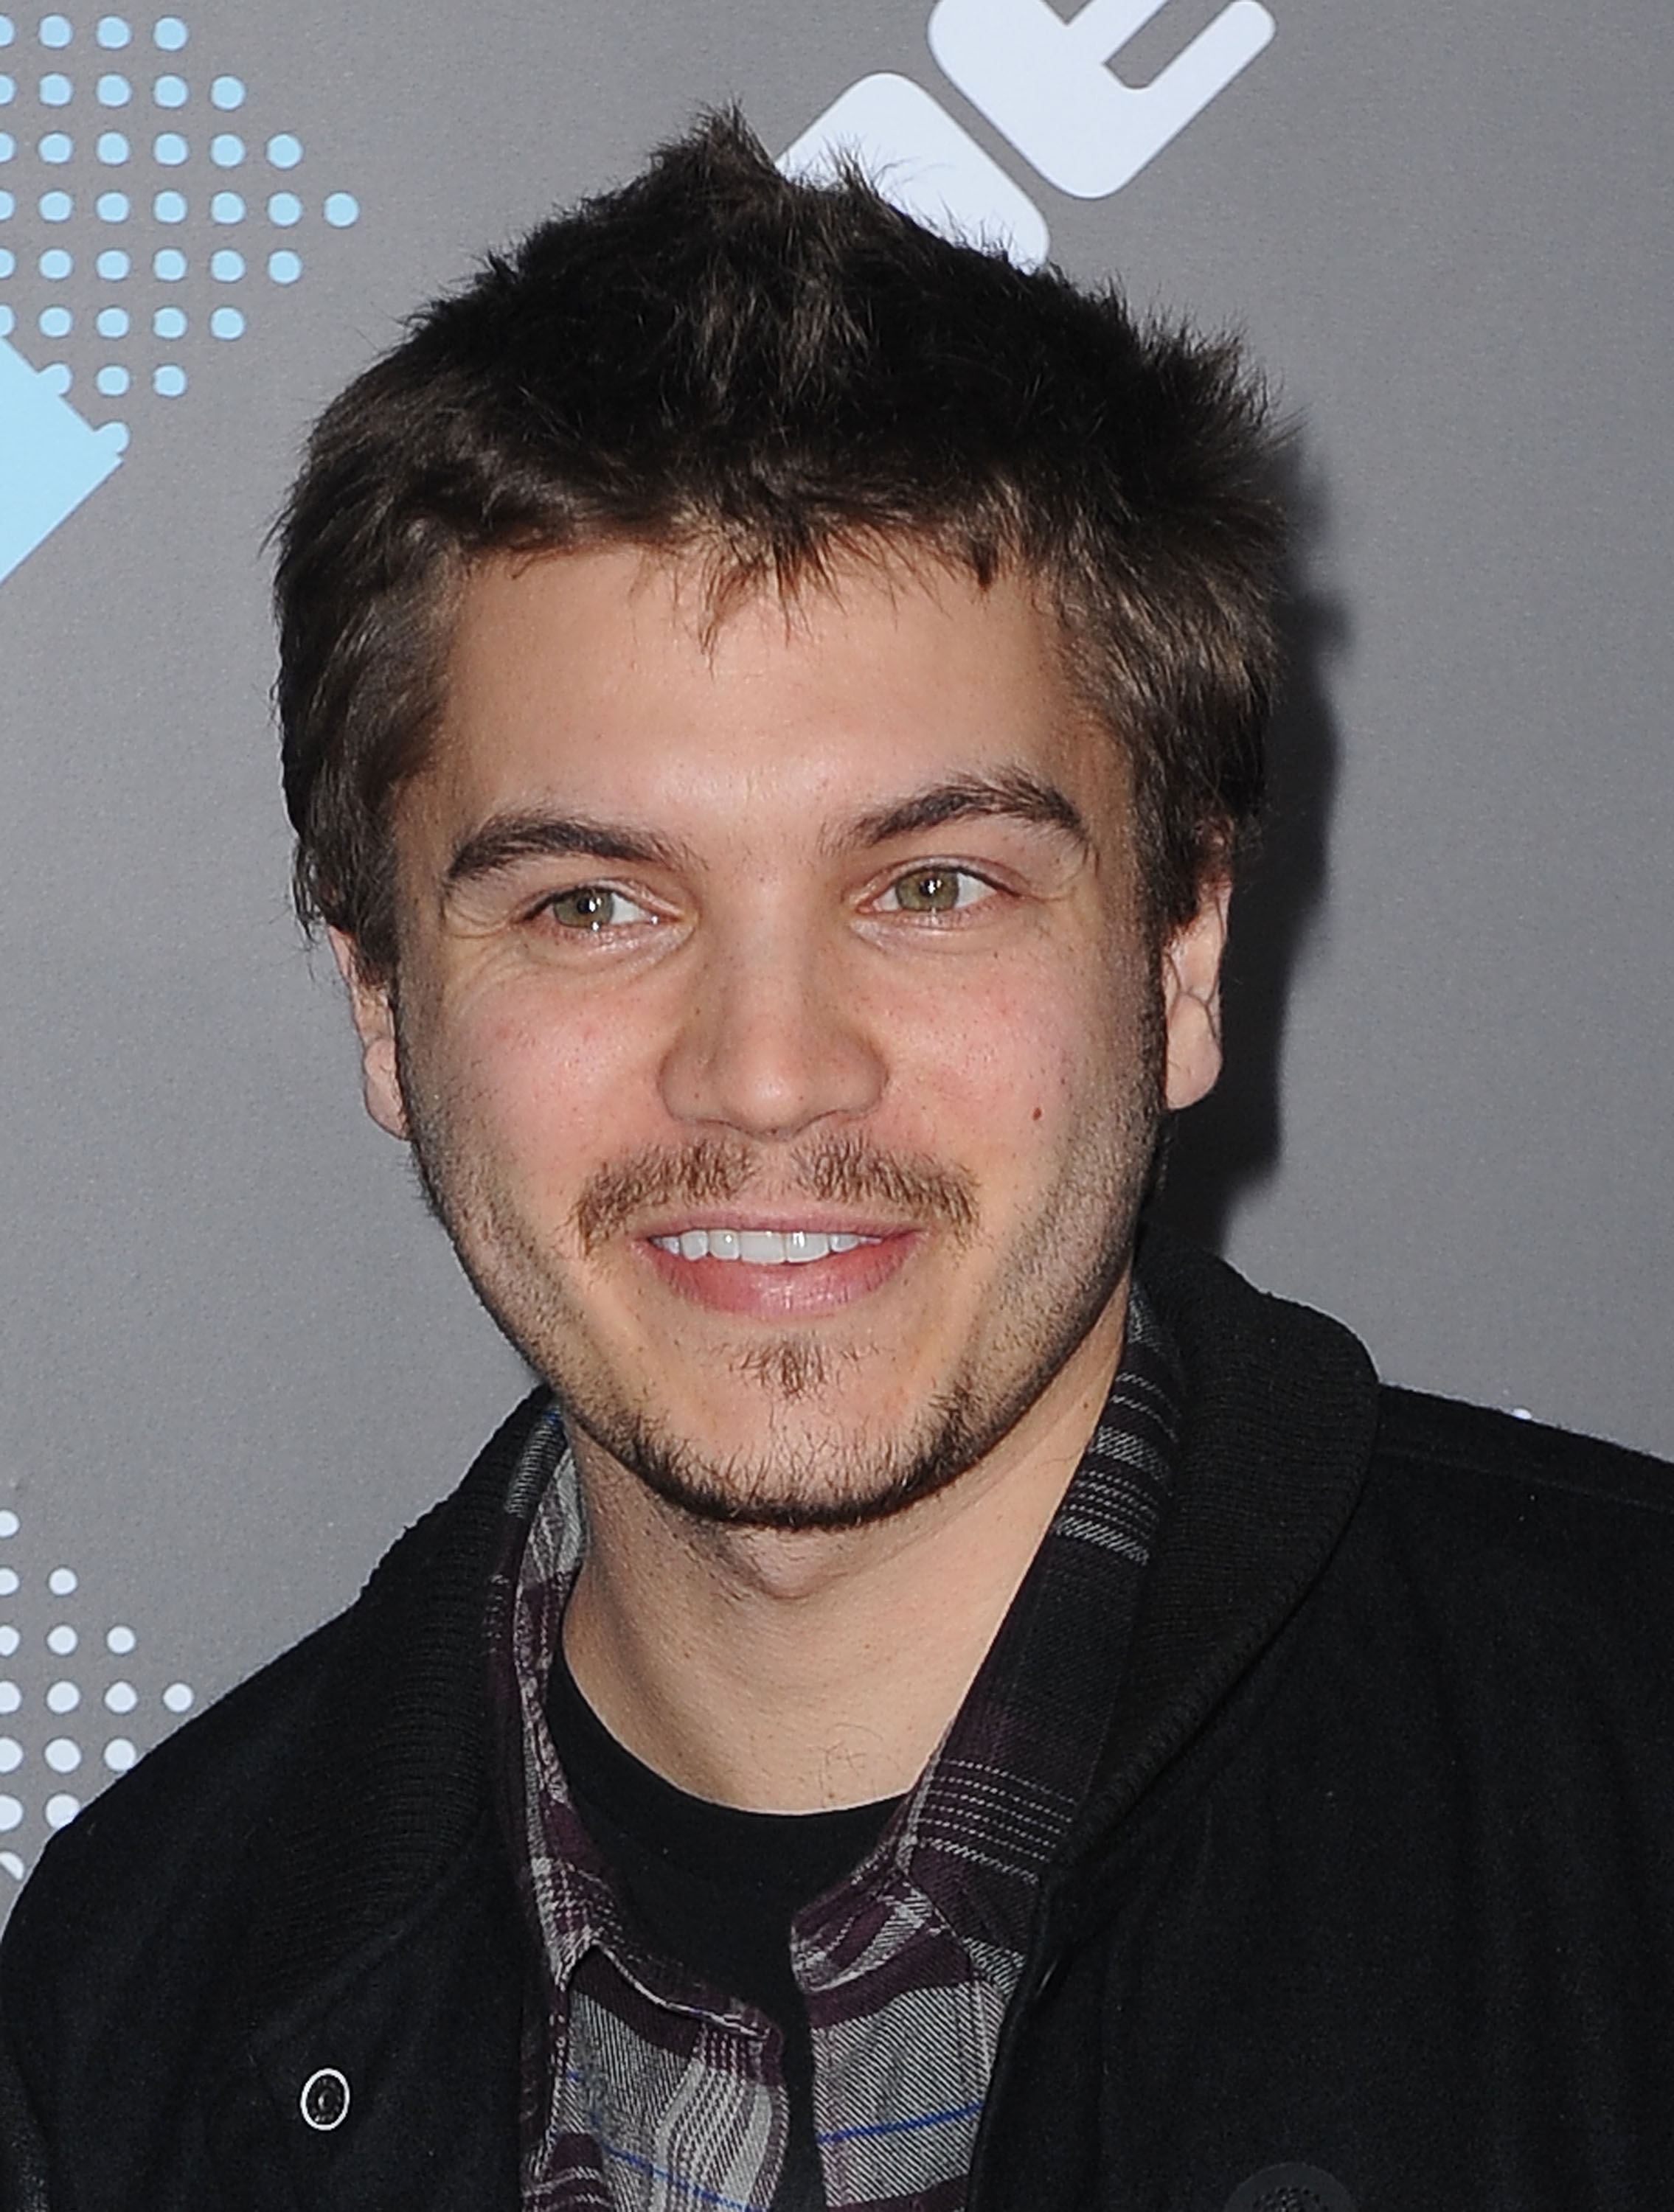 Actor Emile Hirsch appears in Utah court on assault charge   WTOP